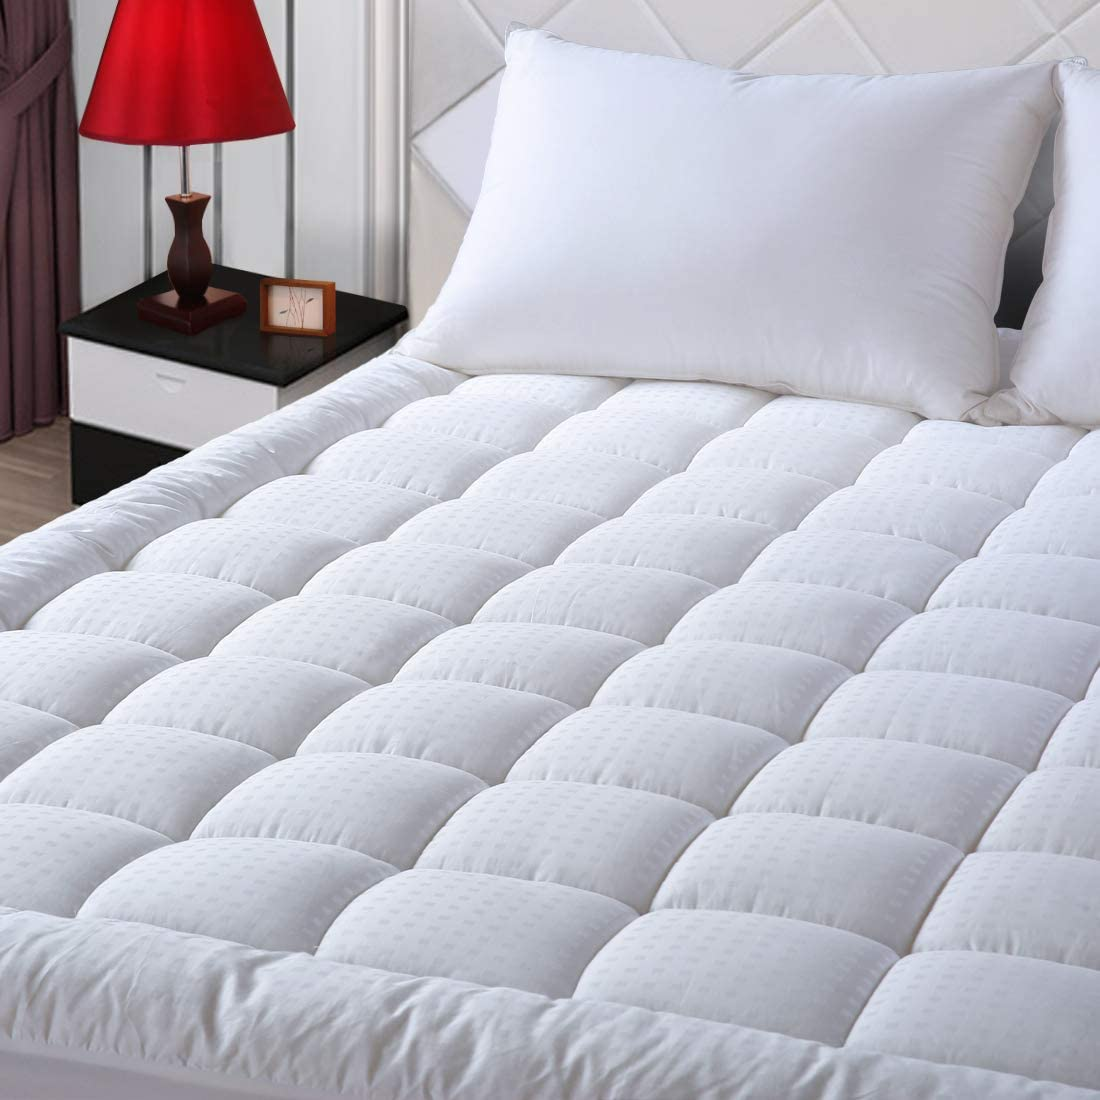 EASELAND Queen Pillow Top Mattress Pad